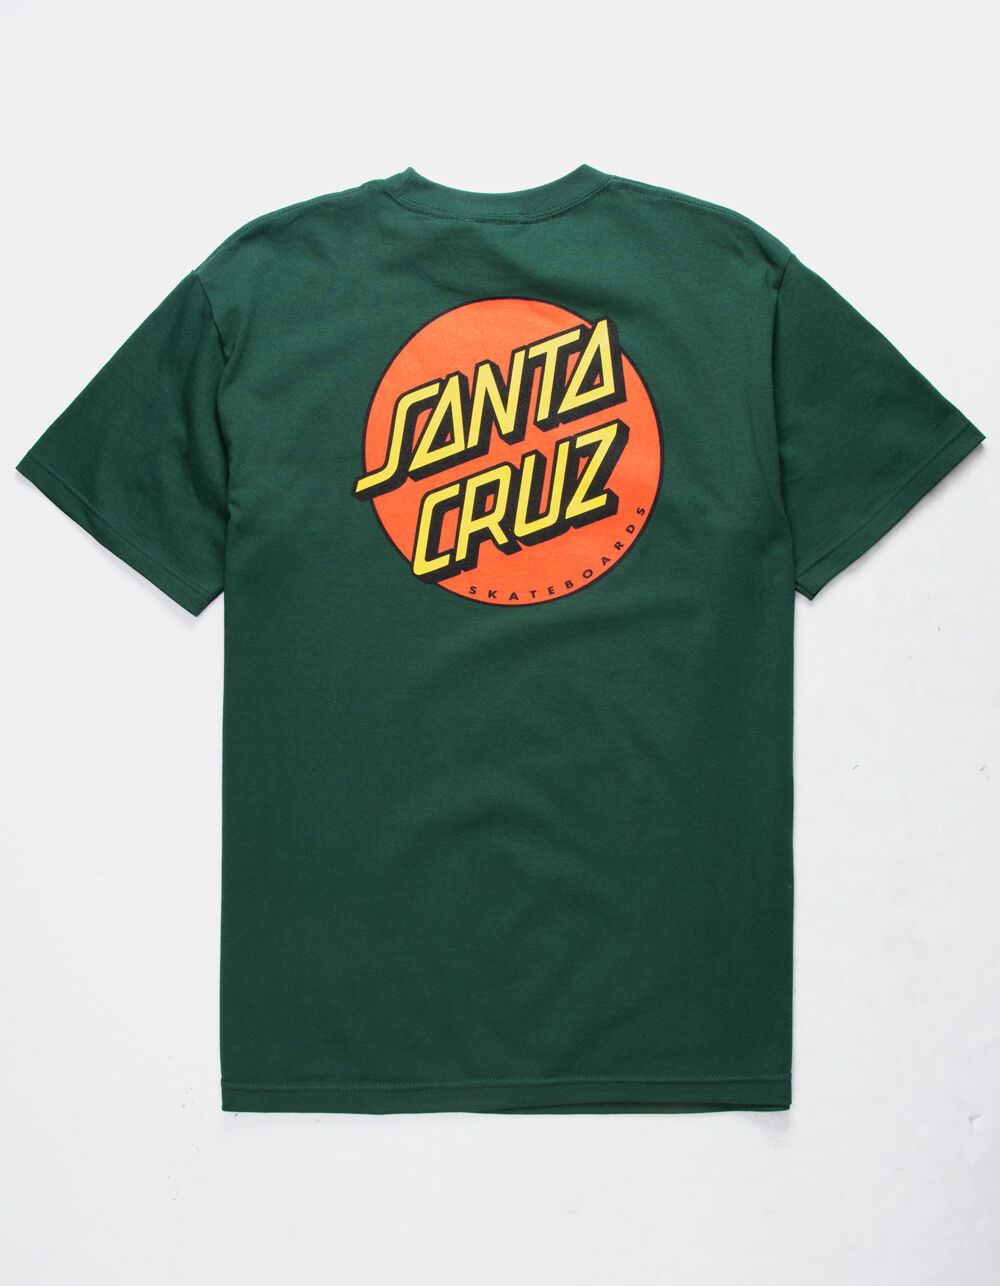 SANTA CRUZ Classic Dot Forest T-Shirt